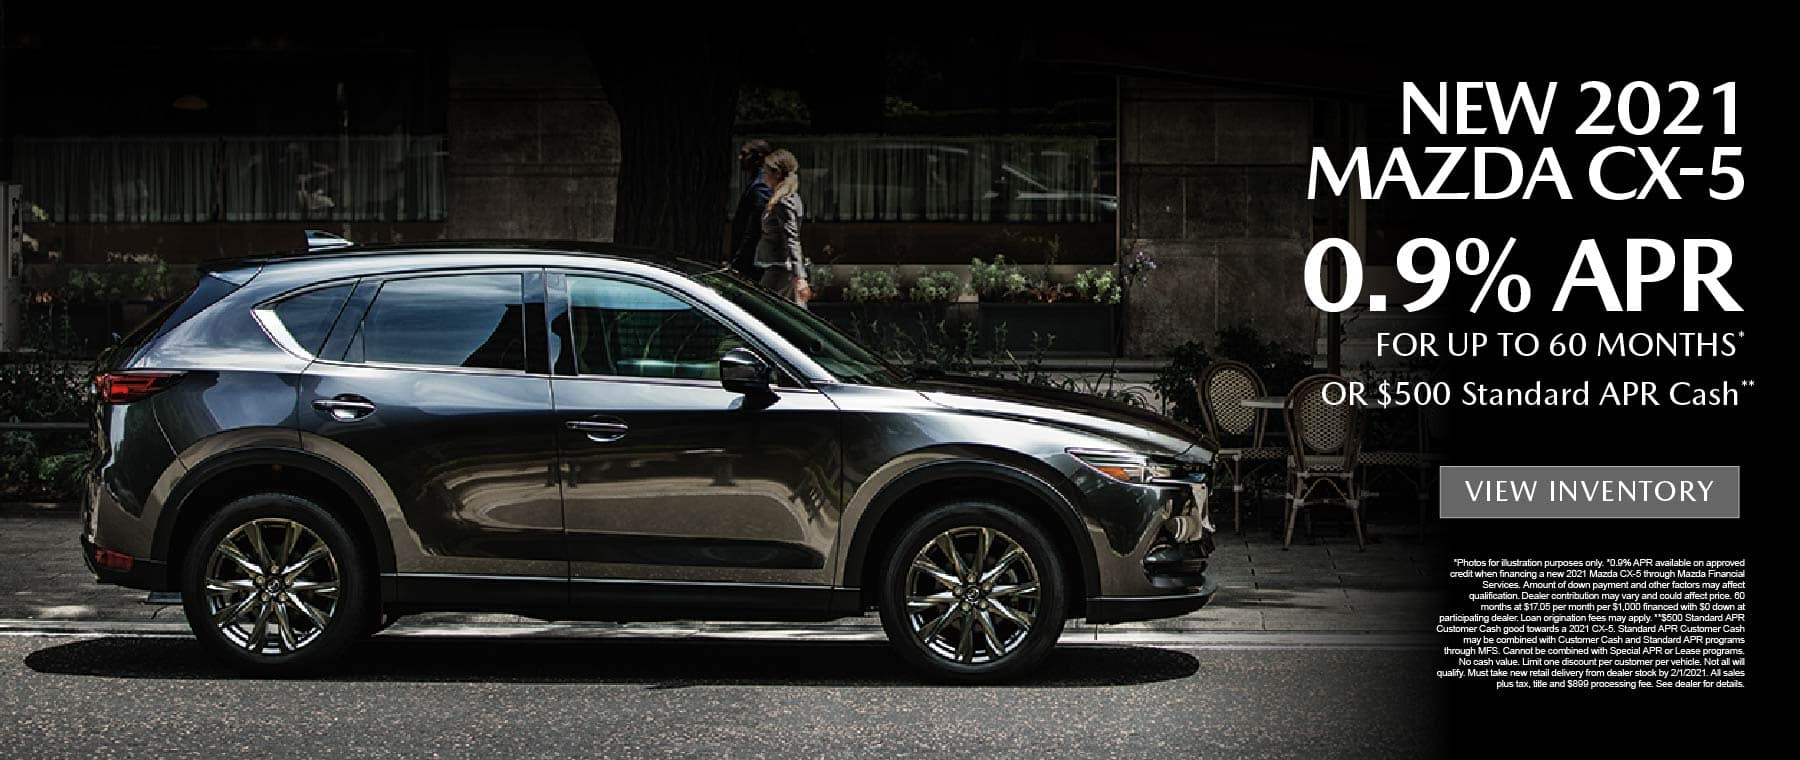 NEW 2021 MAZDA CX-5 0.9% APR for up to 60 months or $500 standard APR Cash.